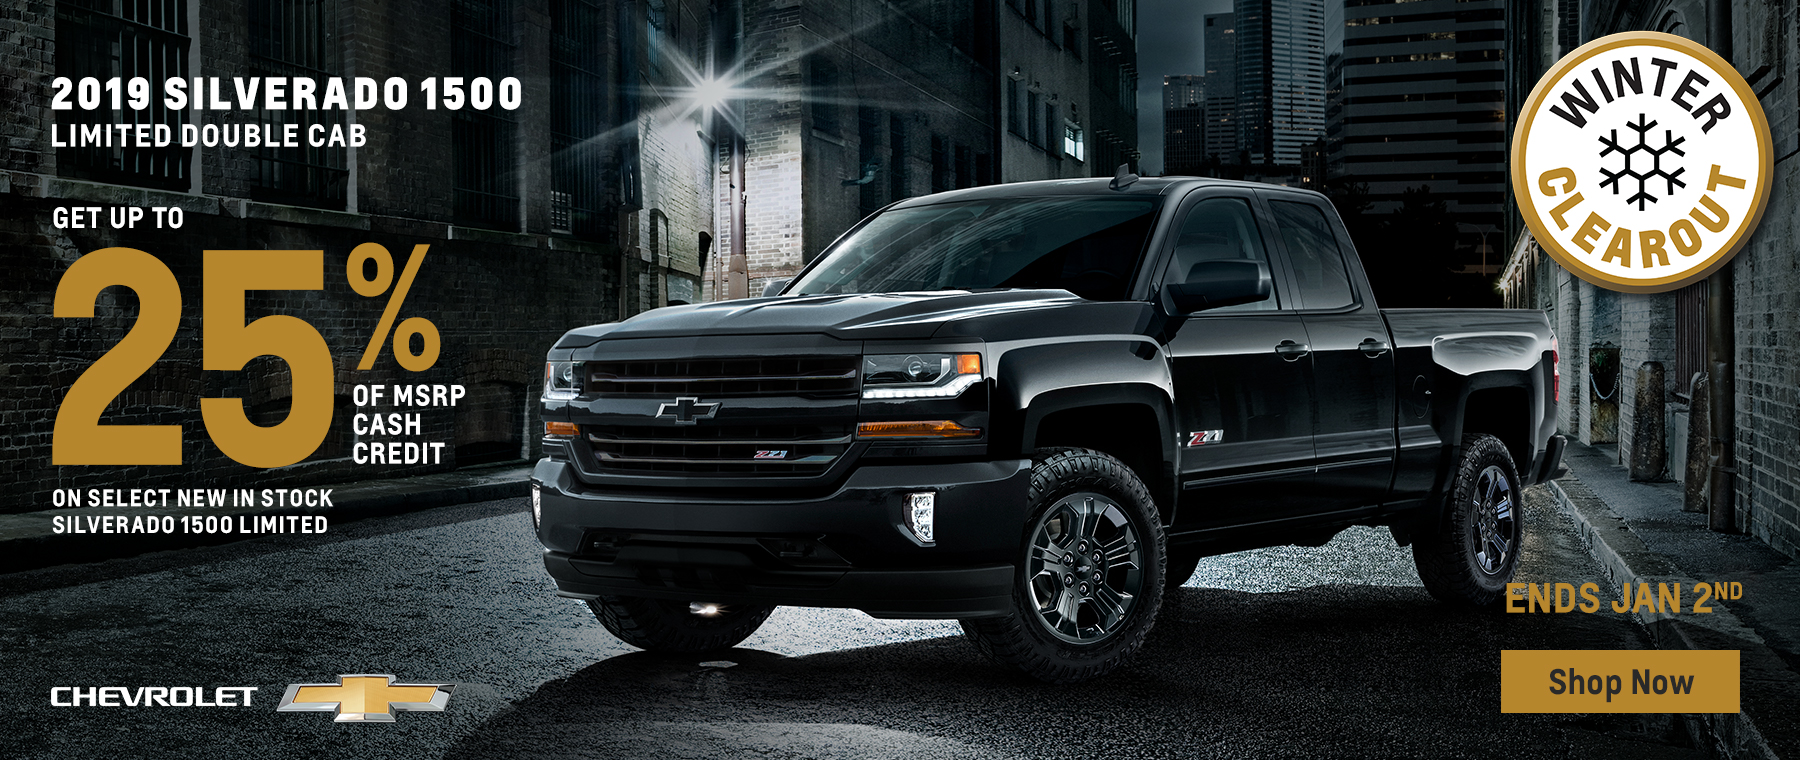 2019 Silverado 1500 Limited Double Cab